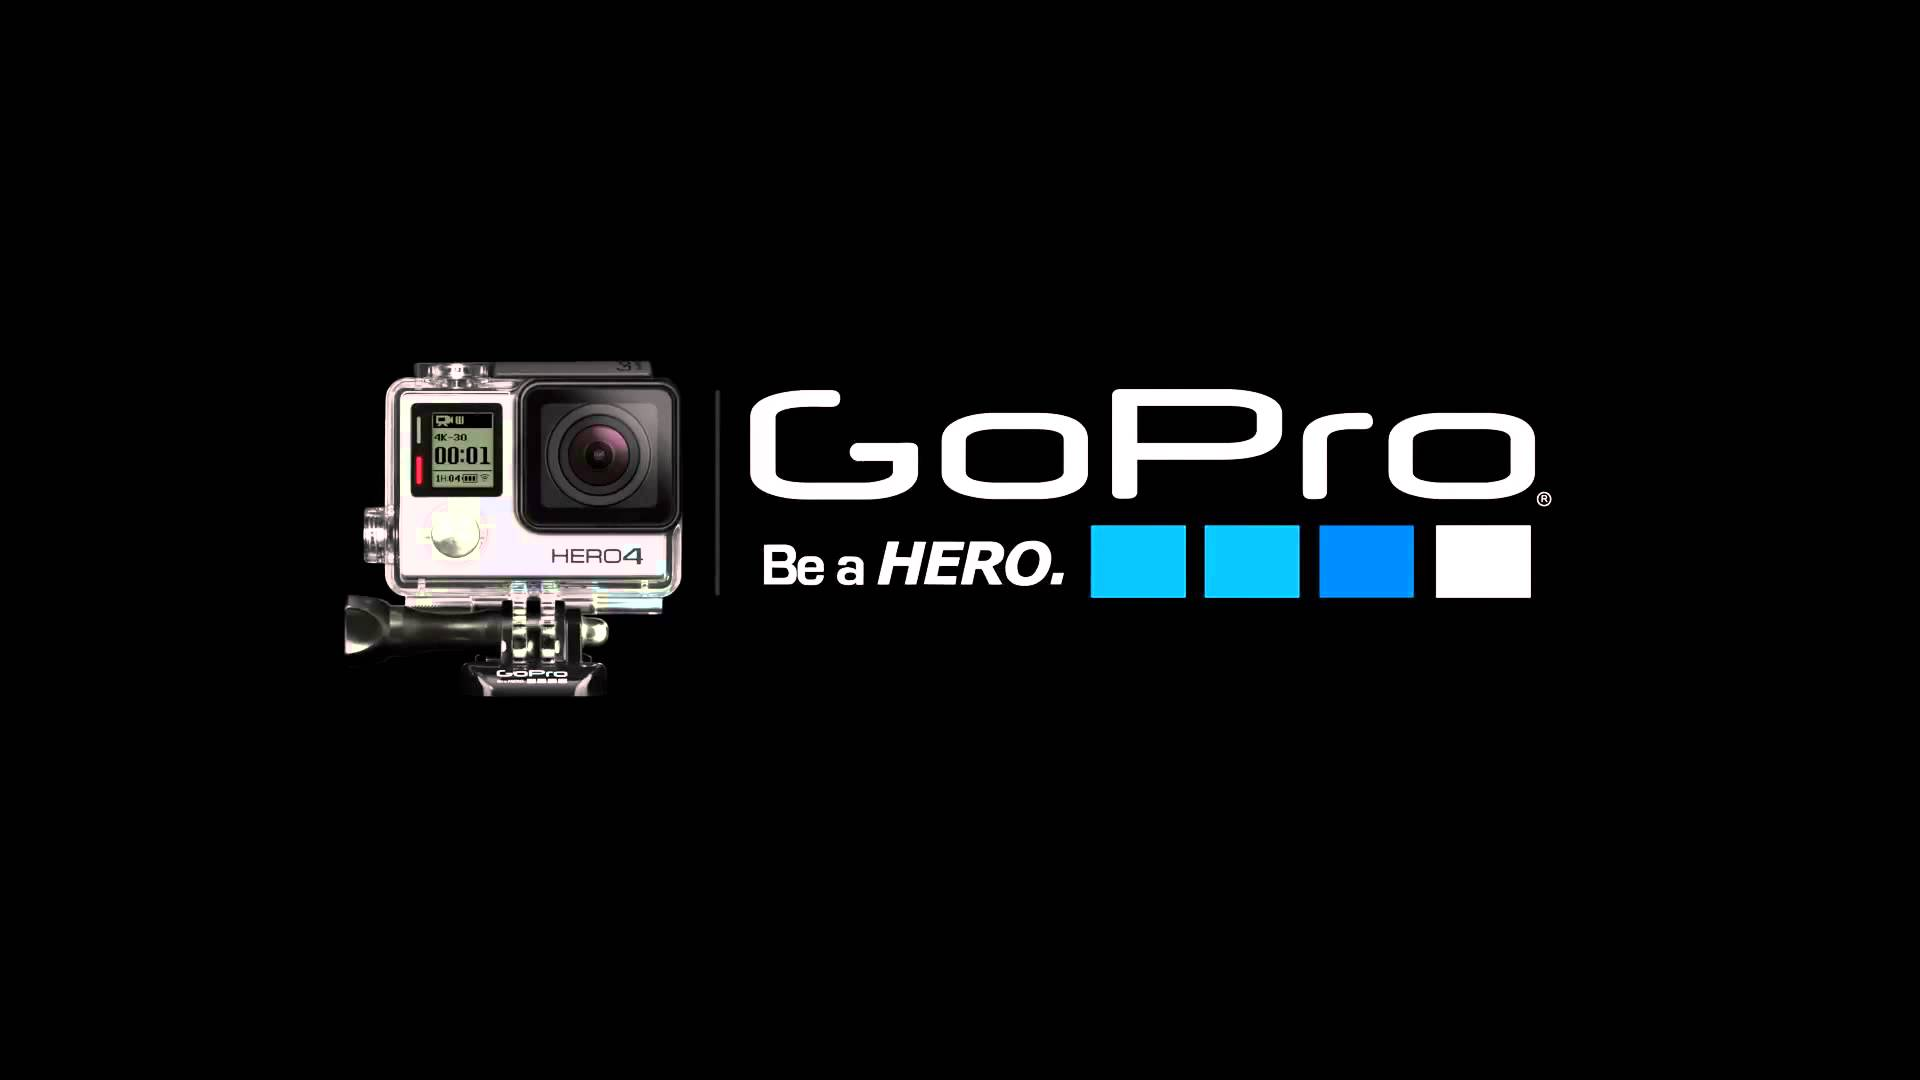 GoPro Be A Hero Ad Parody